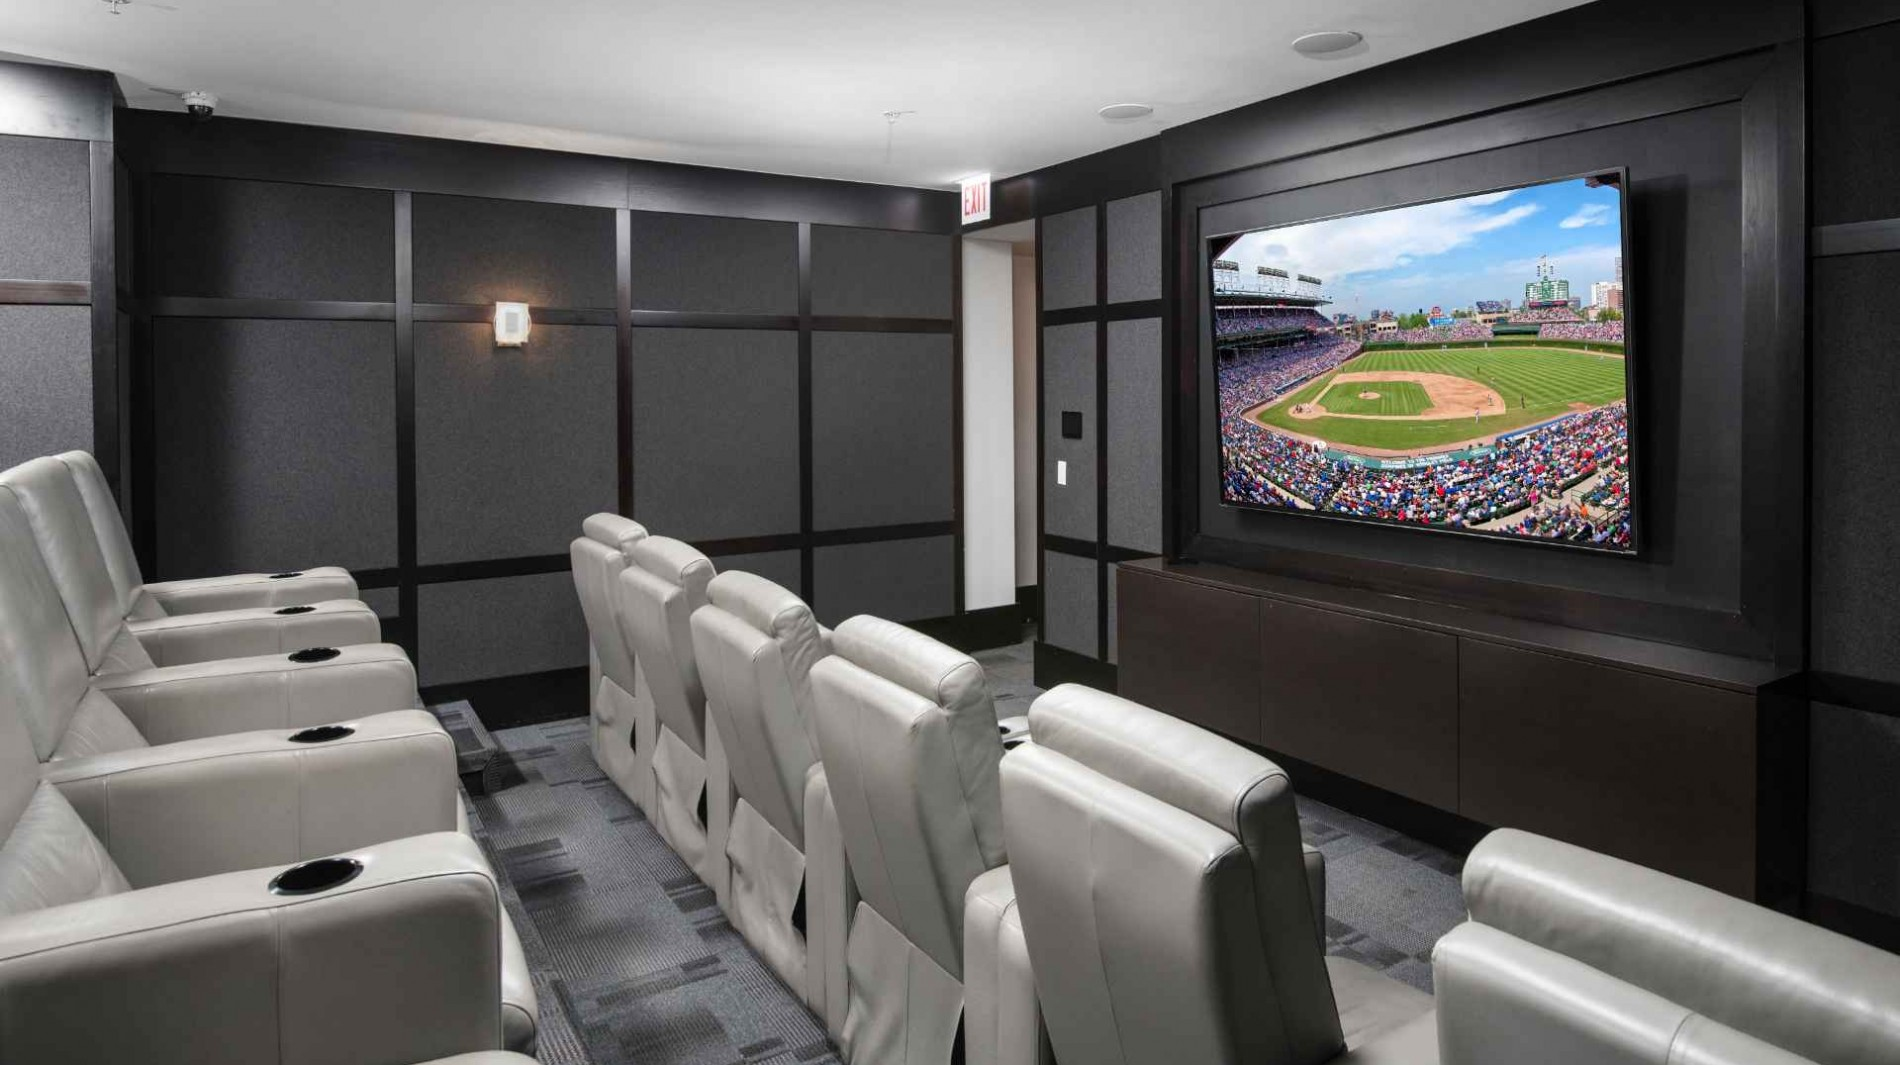 State-of-the-art movie theater with oversized screen and stadium-style leather seating.